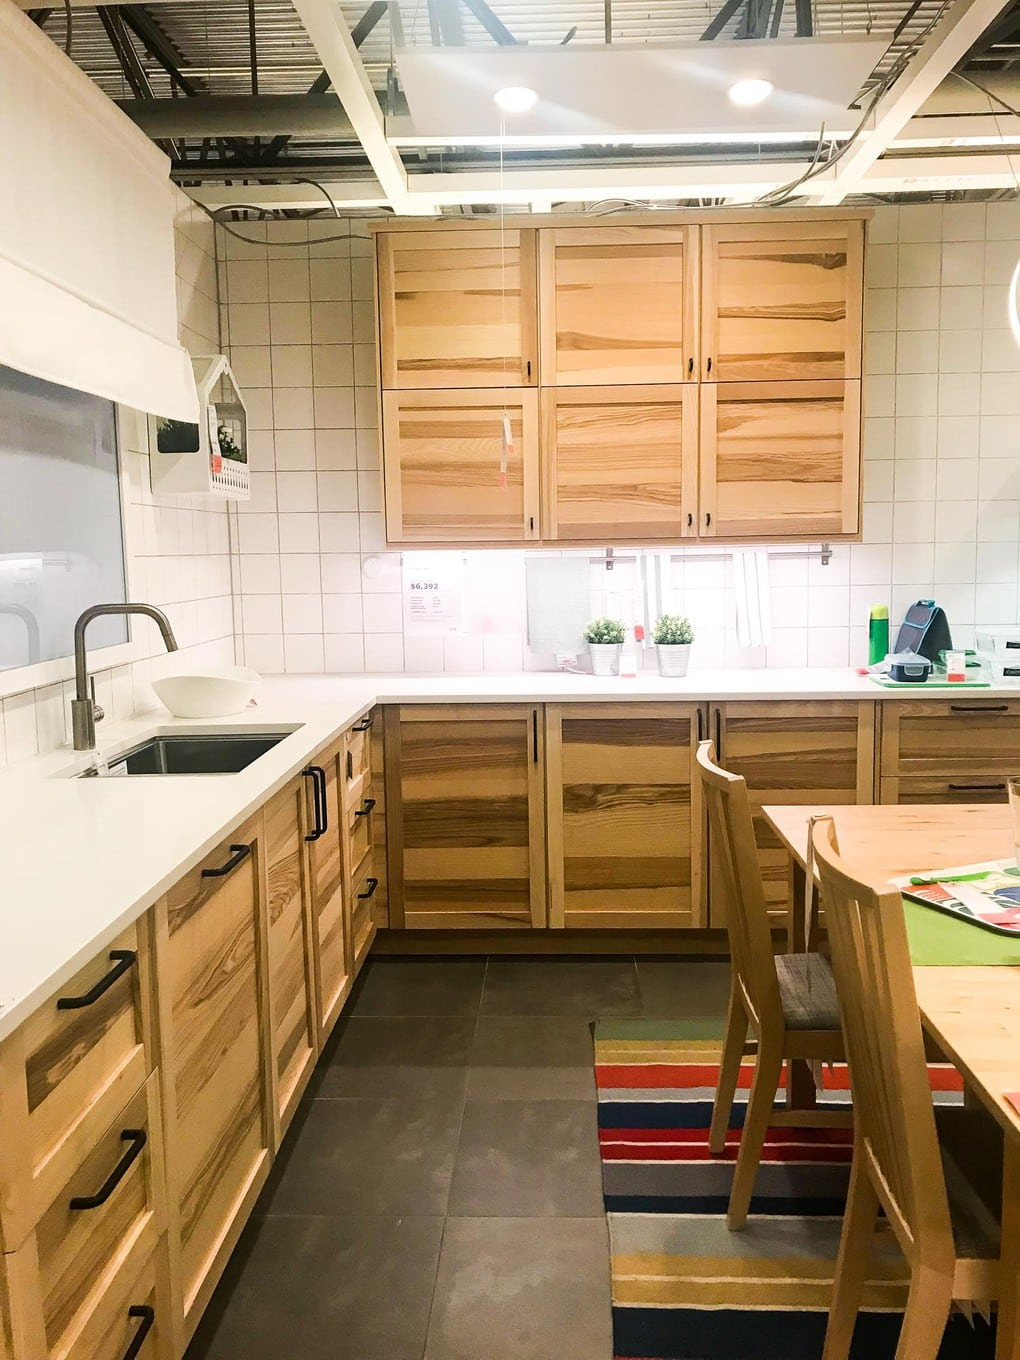 IKEA cabinetry